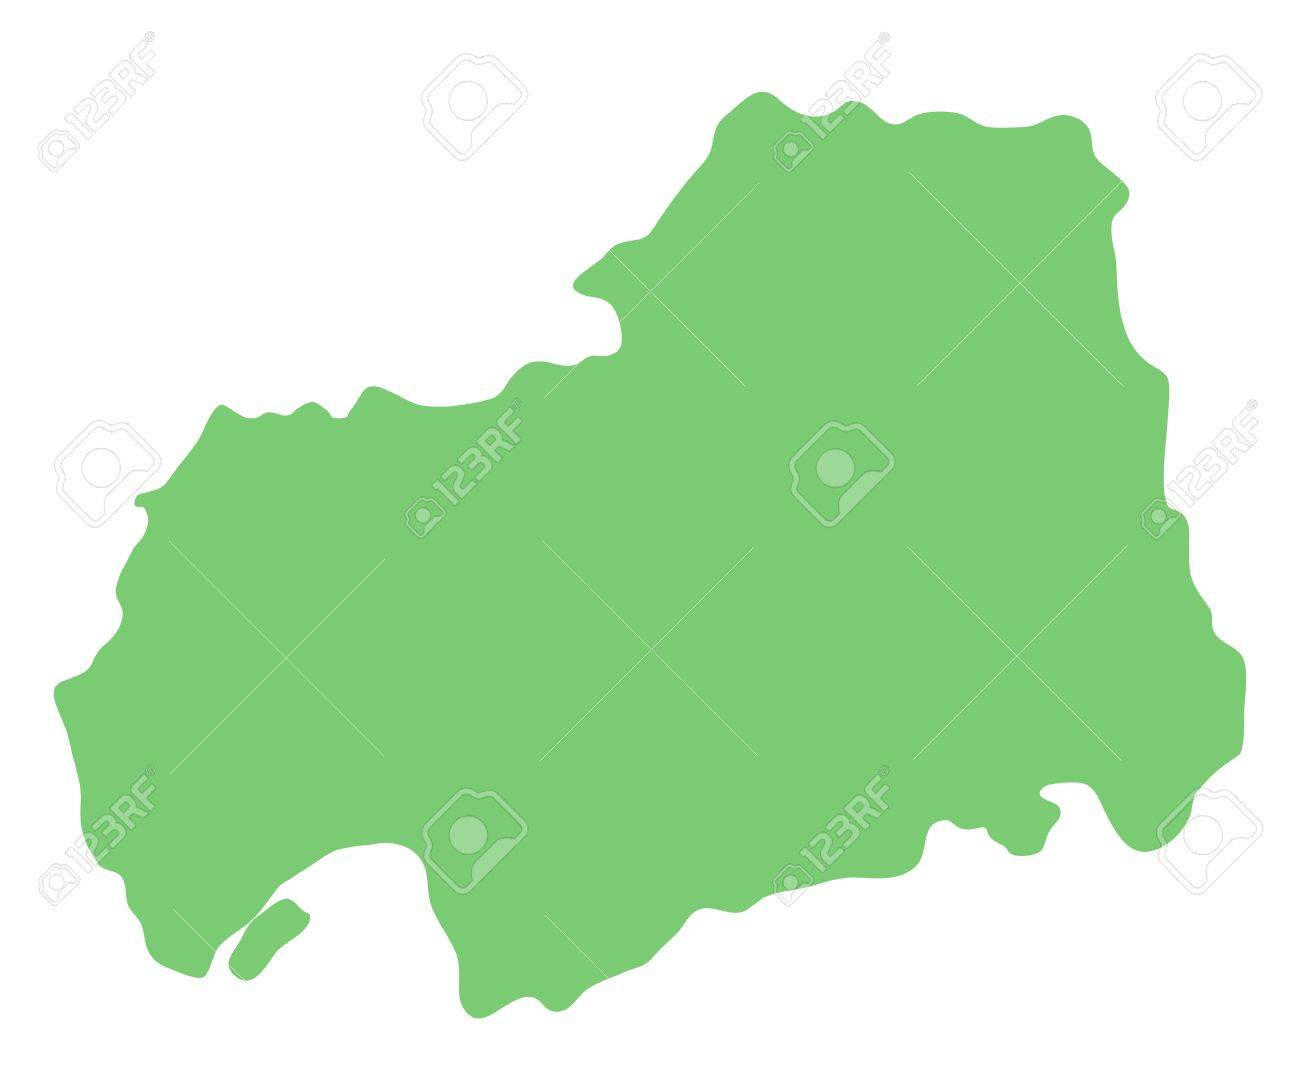 Map Of Hiroshima Prefecture, Japan Stock Photo, Picture And Royalty ...